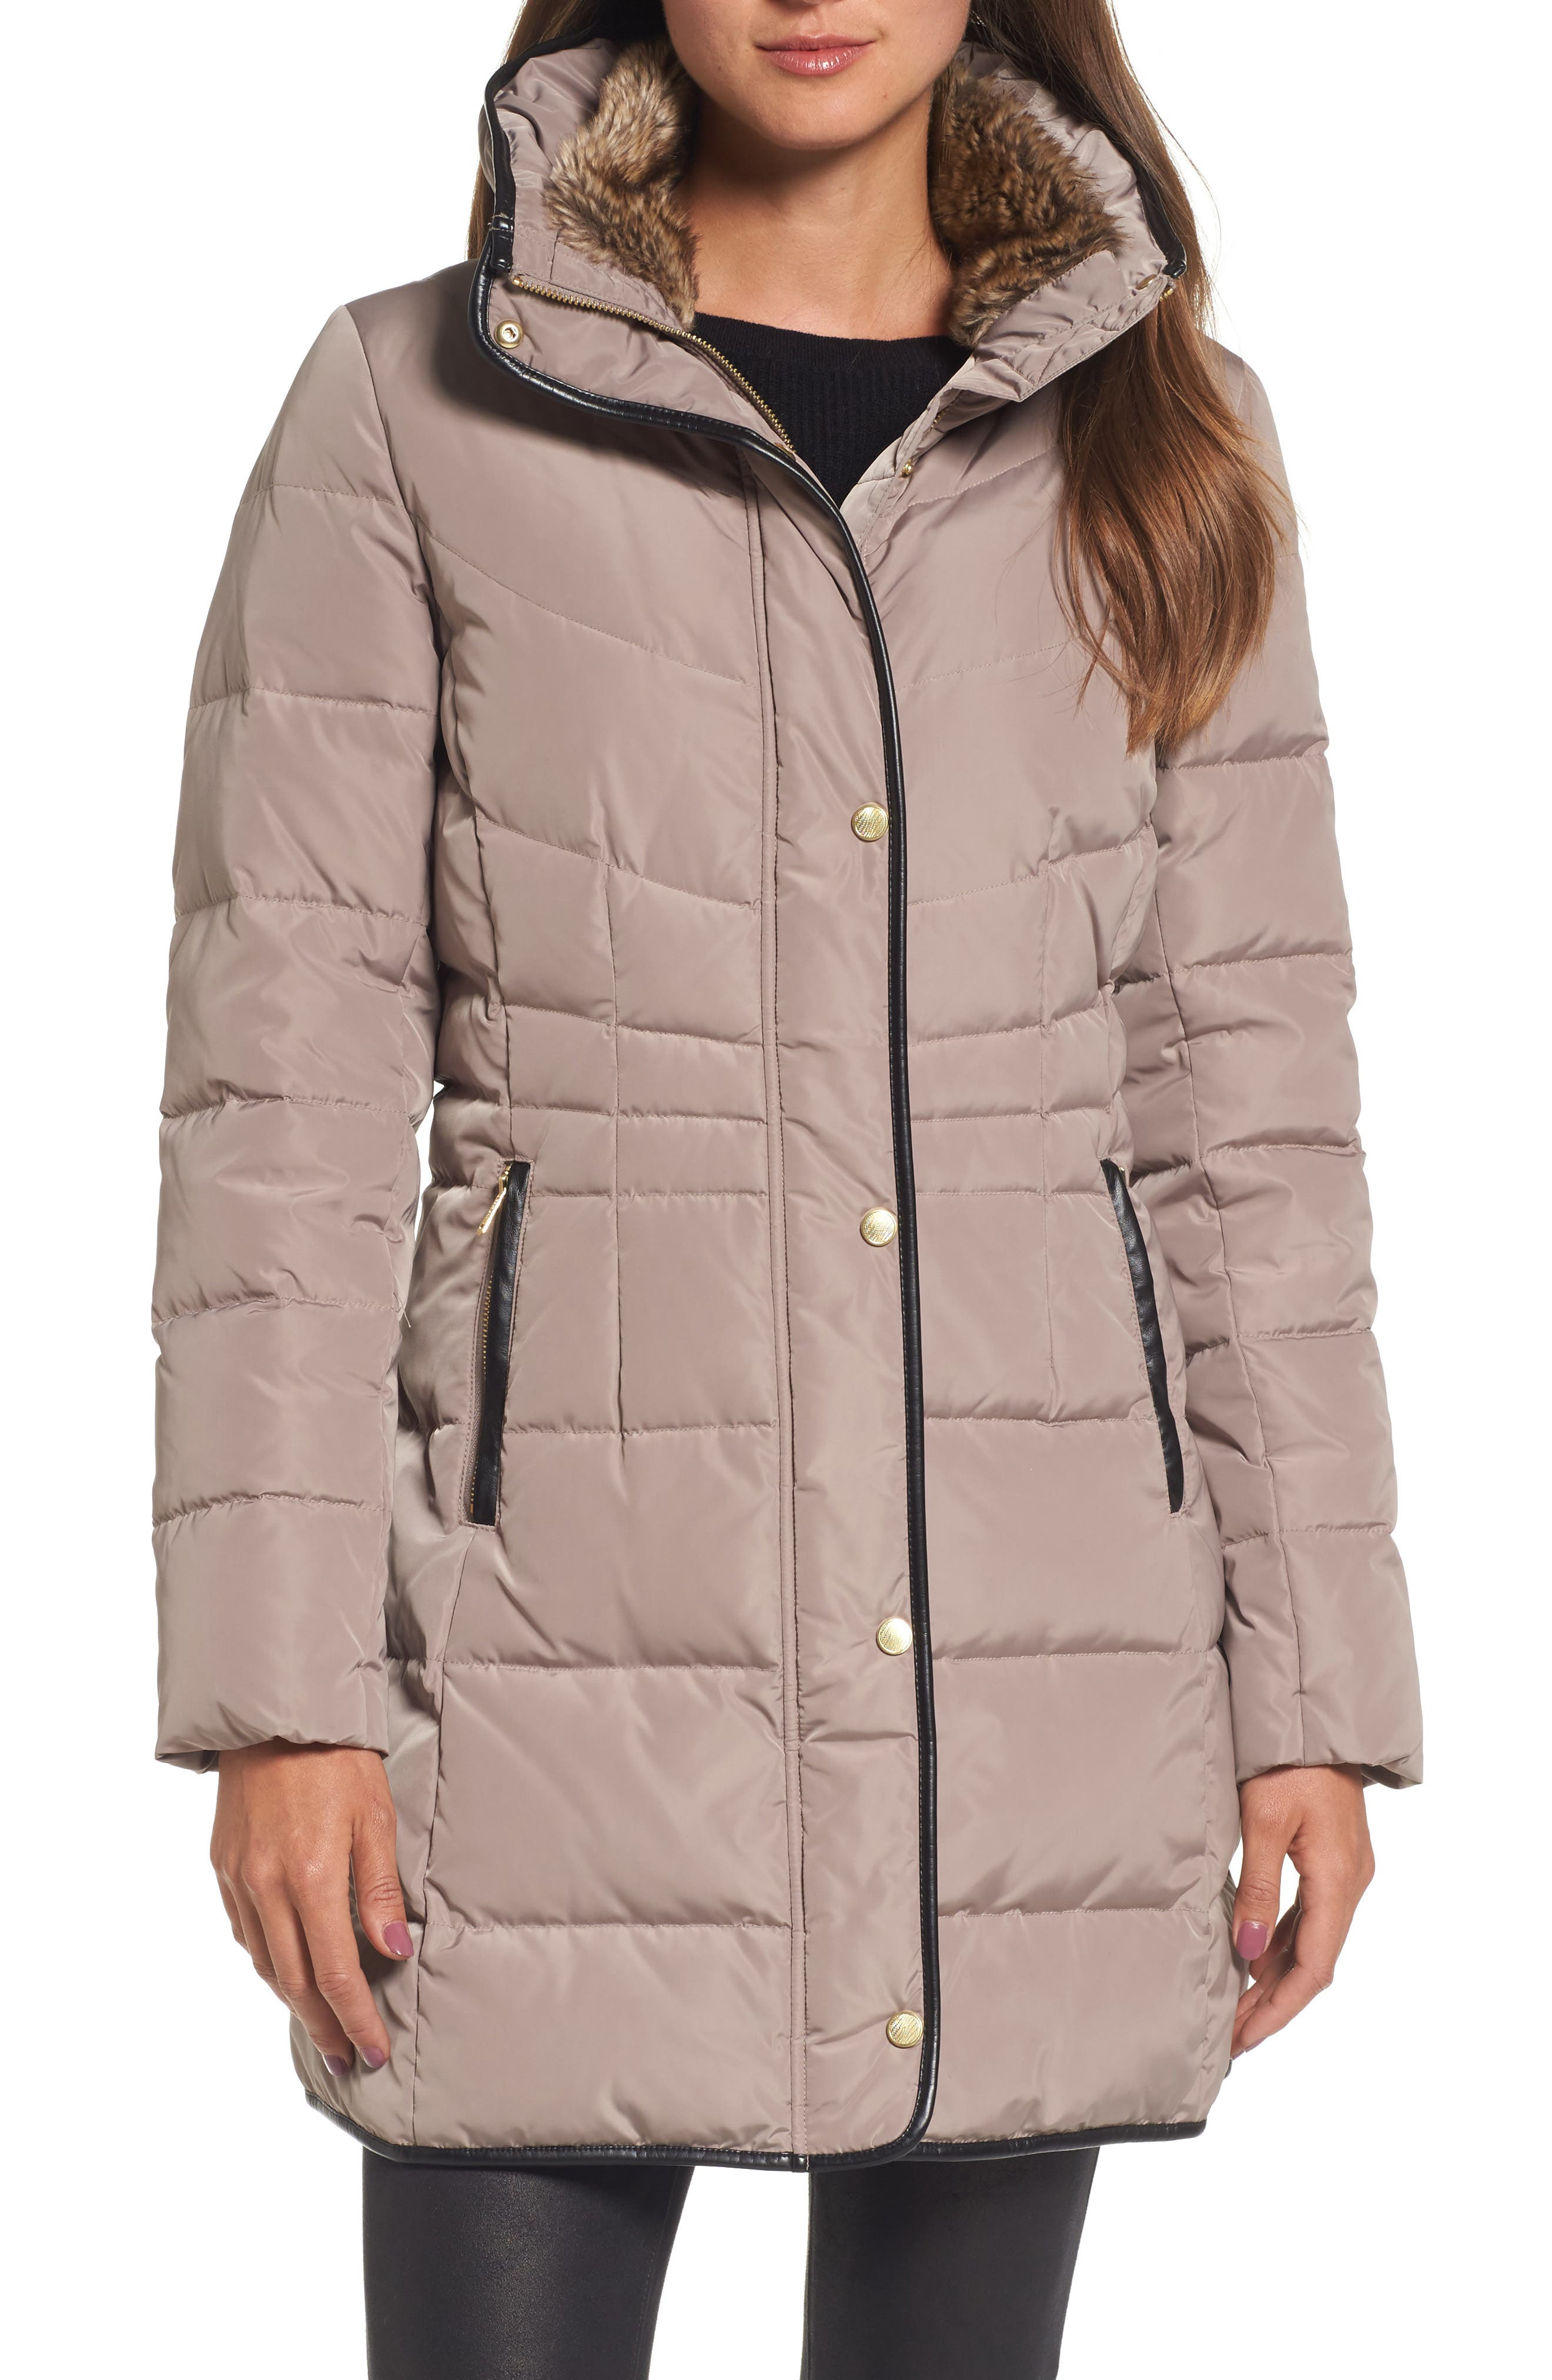 Cole Haan Quilted Down & Feather Fill Jacket with Faux Fur Trim